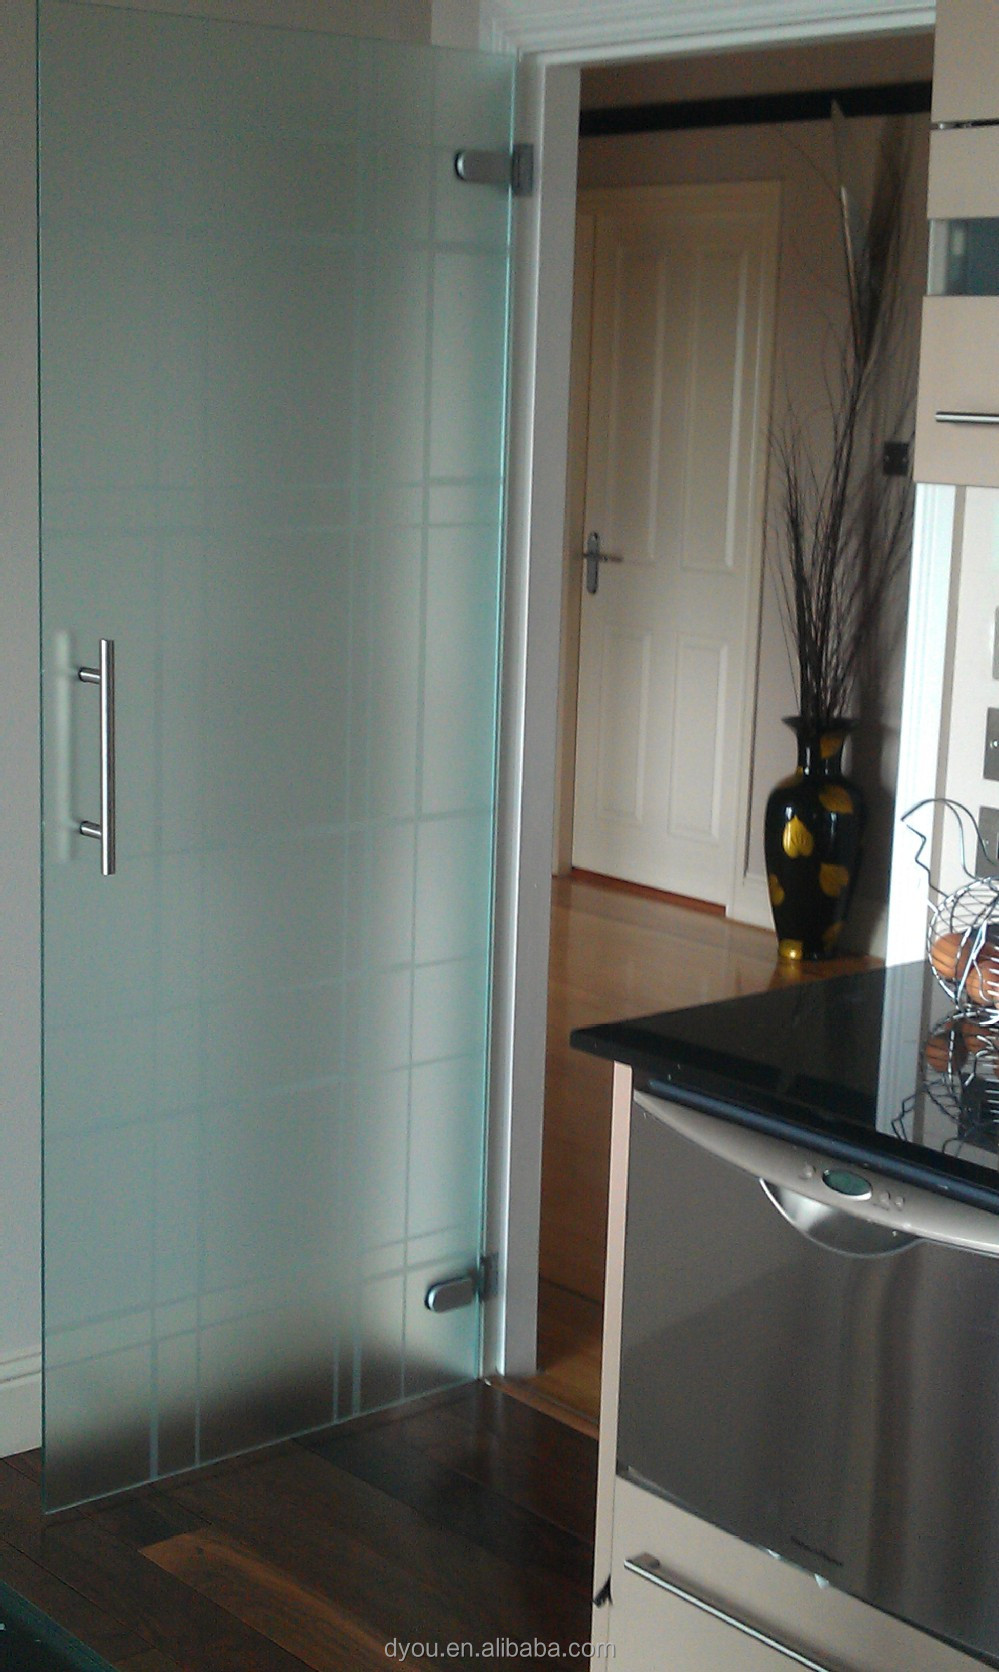 Frosted glass office door - China Wholesale Factory Price Aluminium Frosted Glass Office Doors